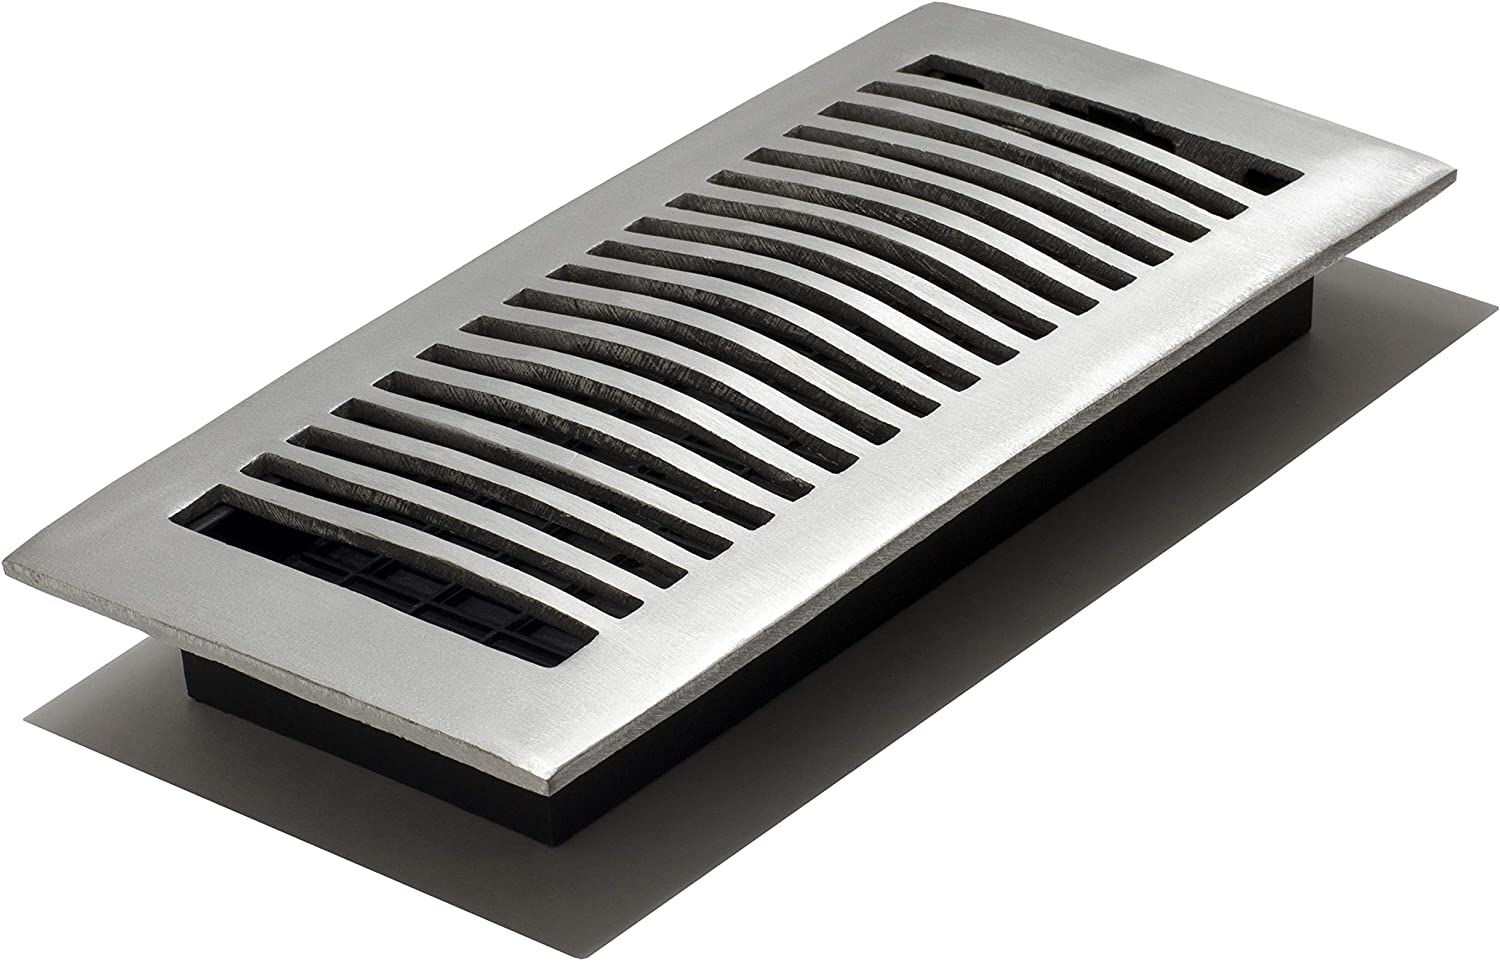 Decor Grates LA410-NKL 4-Inch by 10-Inch Aluminum Floor Register, Nickel